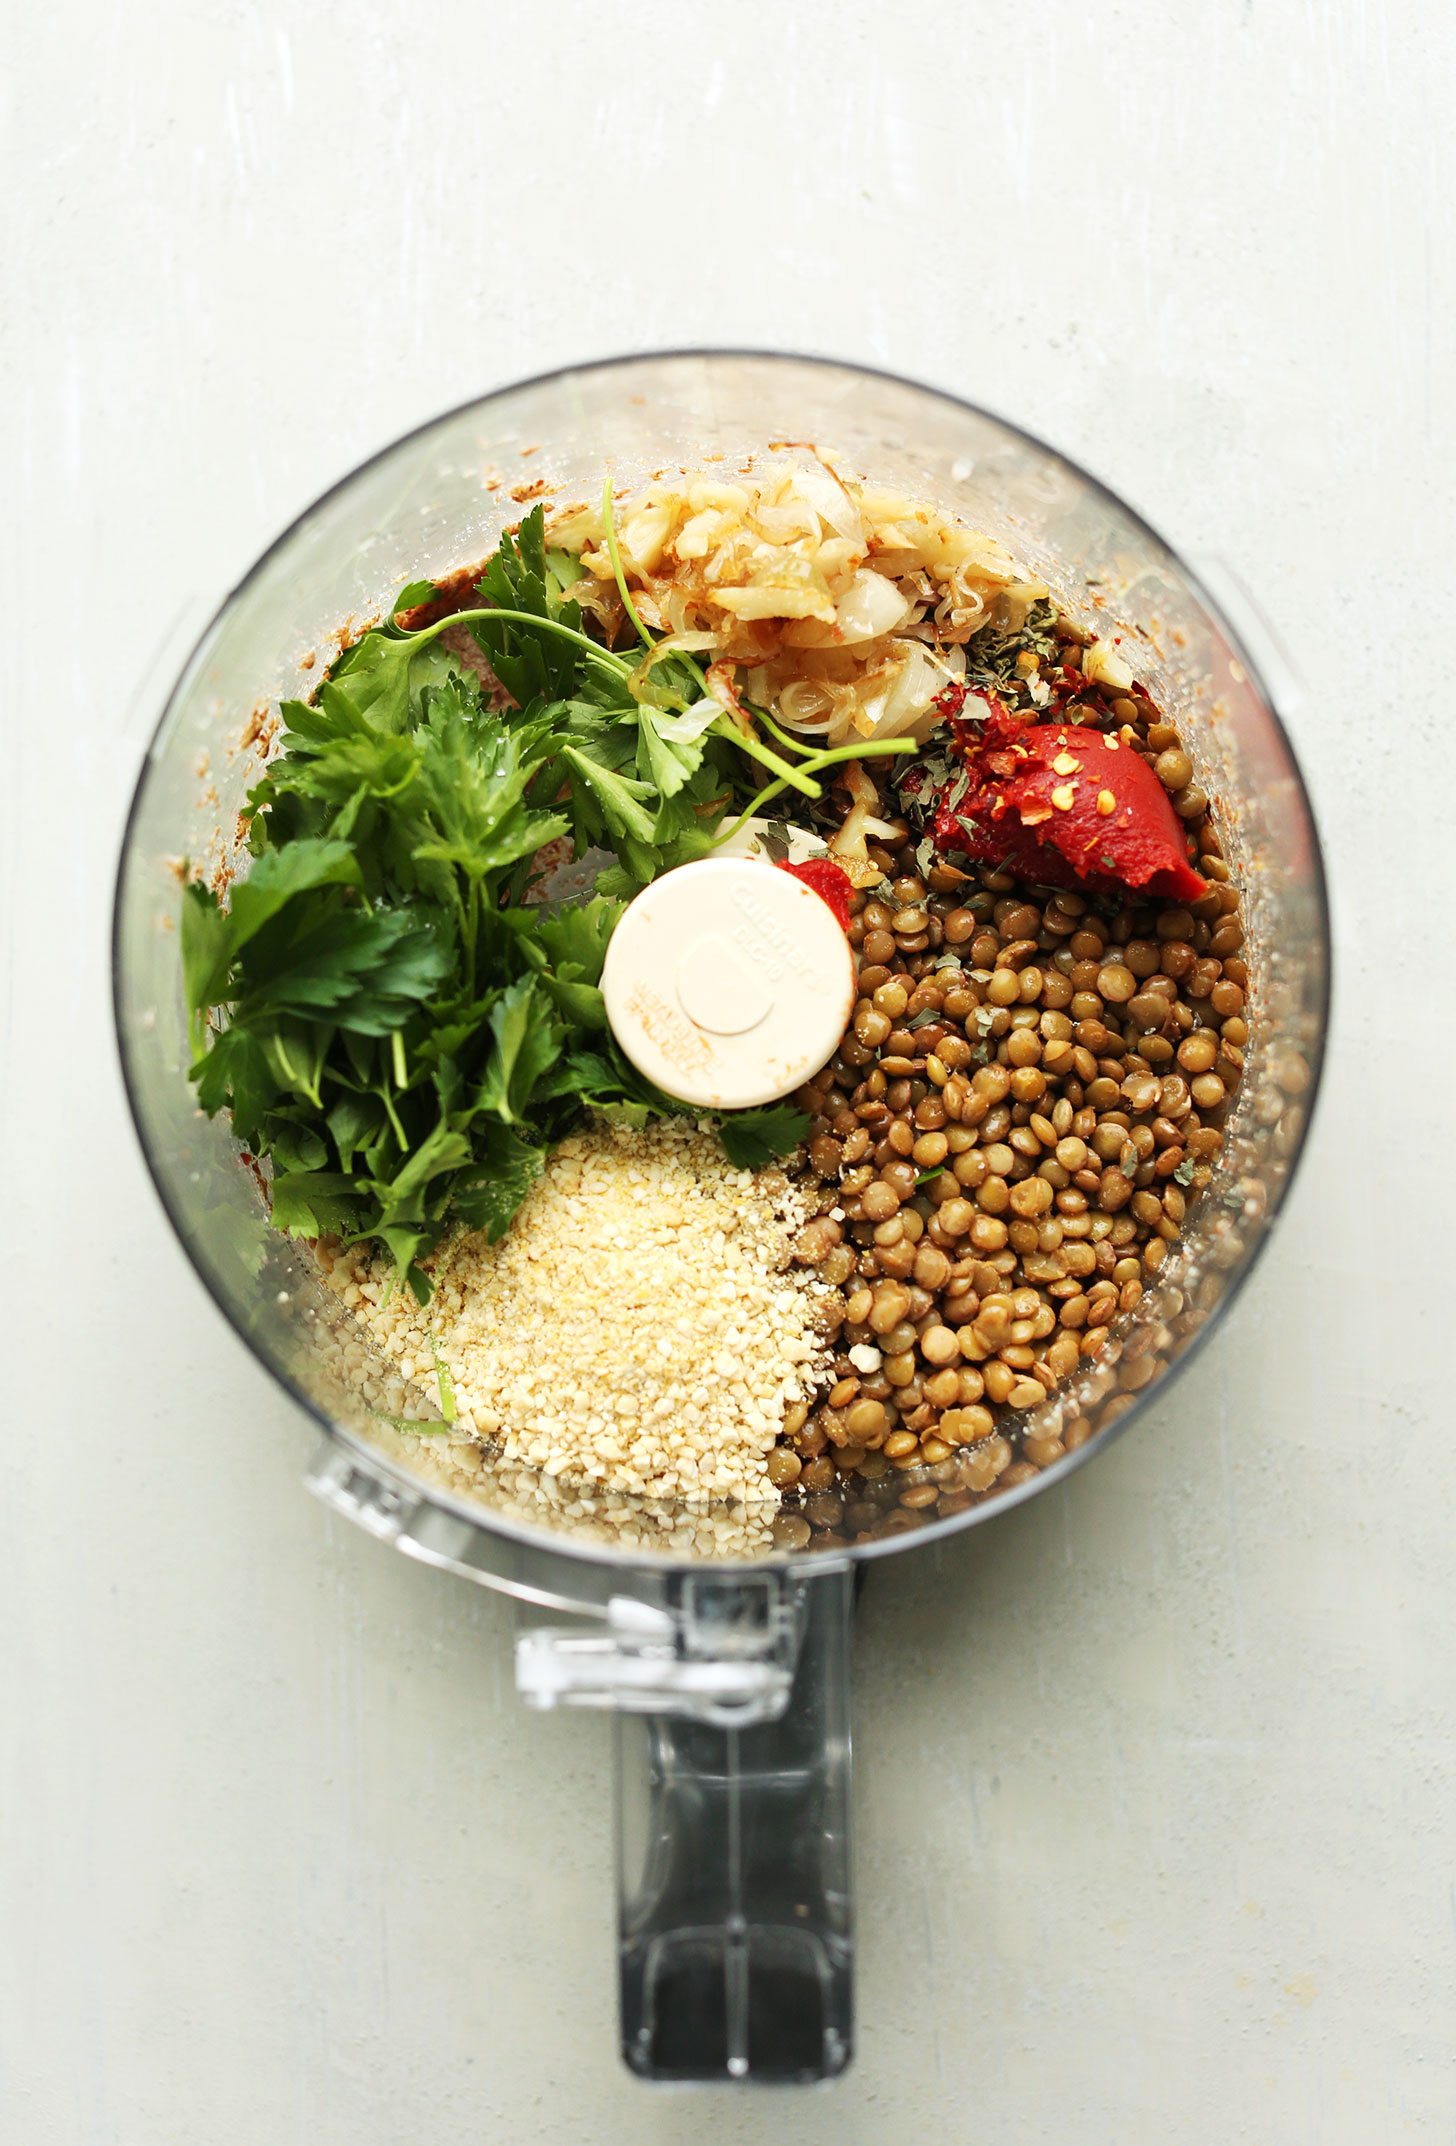 Food processor with ingredients for our protein-packed vegan lentil meatballs recipe